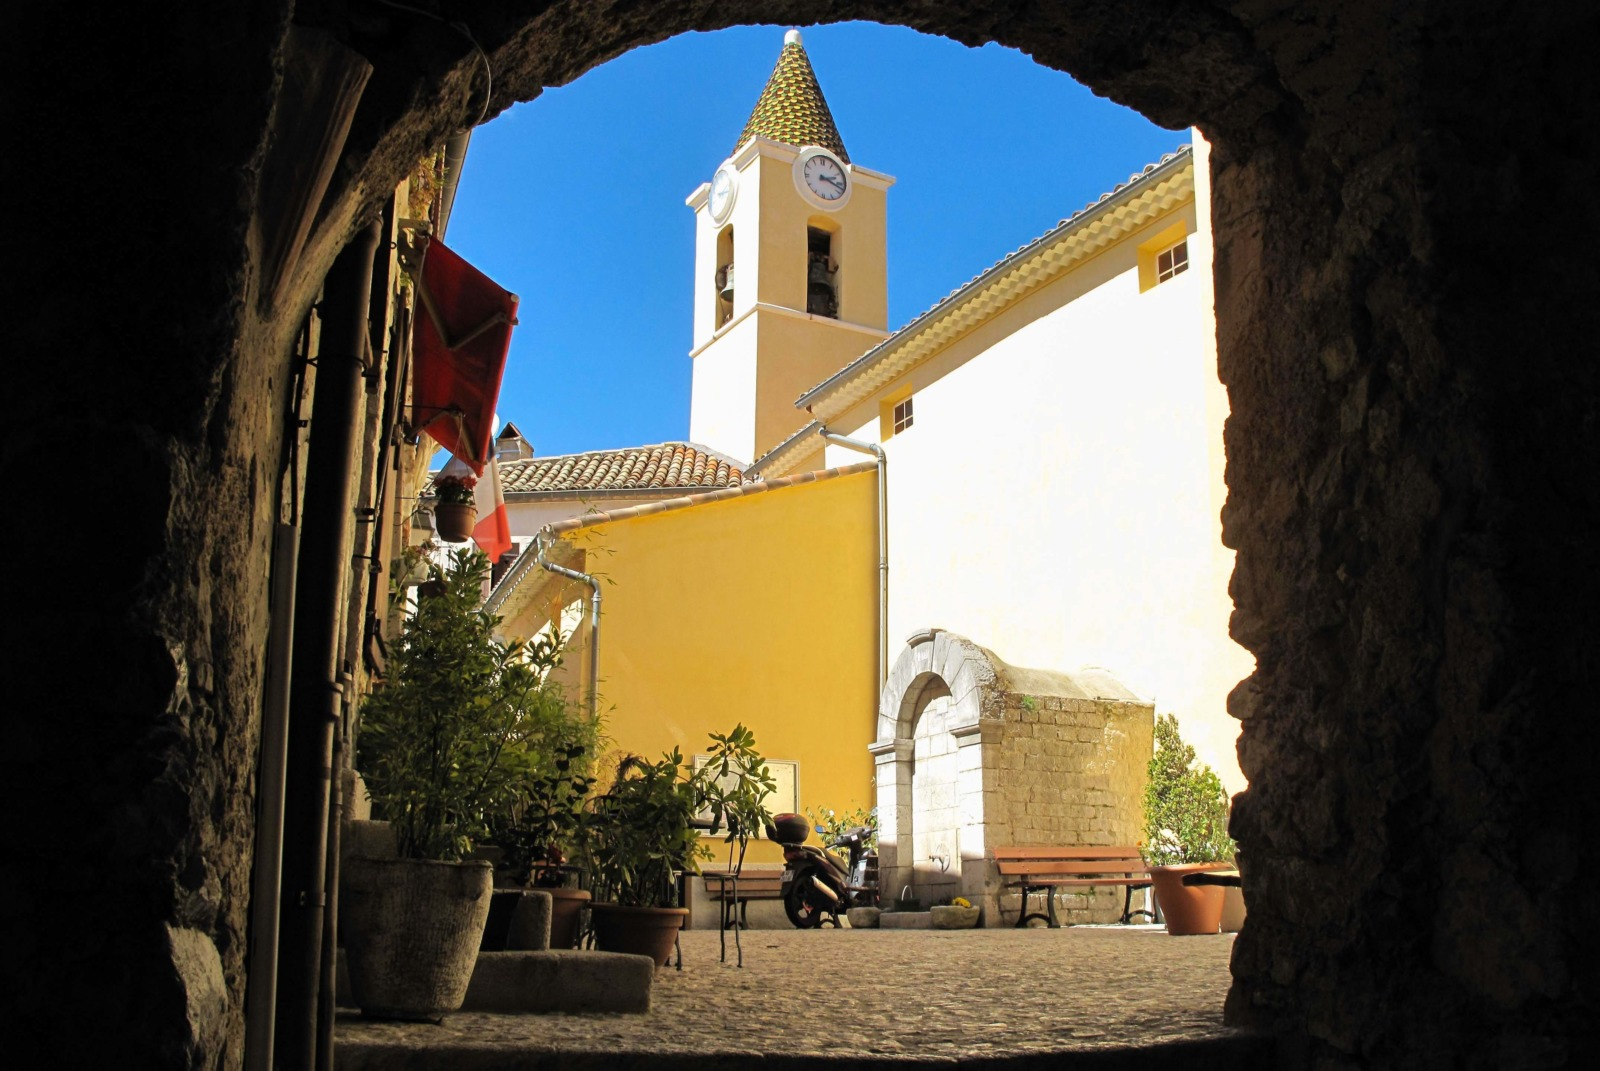 Under an old arch in the village. Photo: Tangopaso (Public Domain)